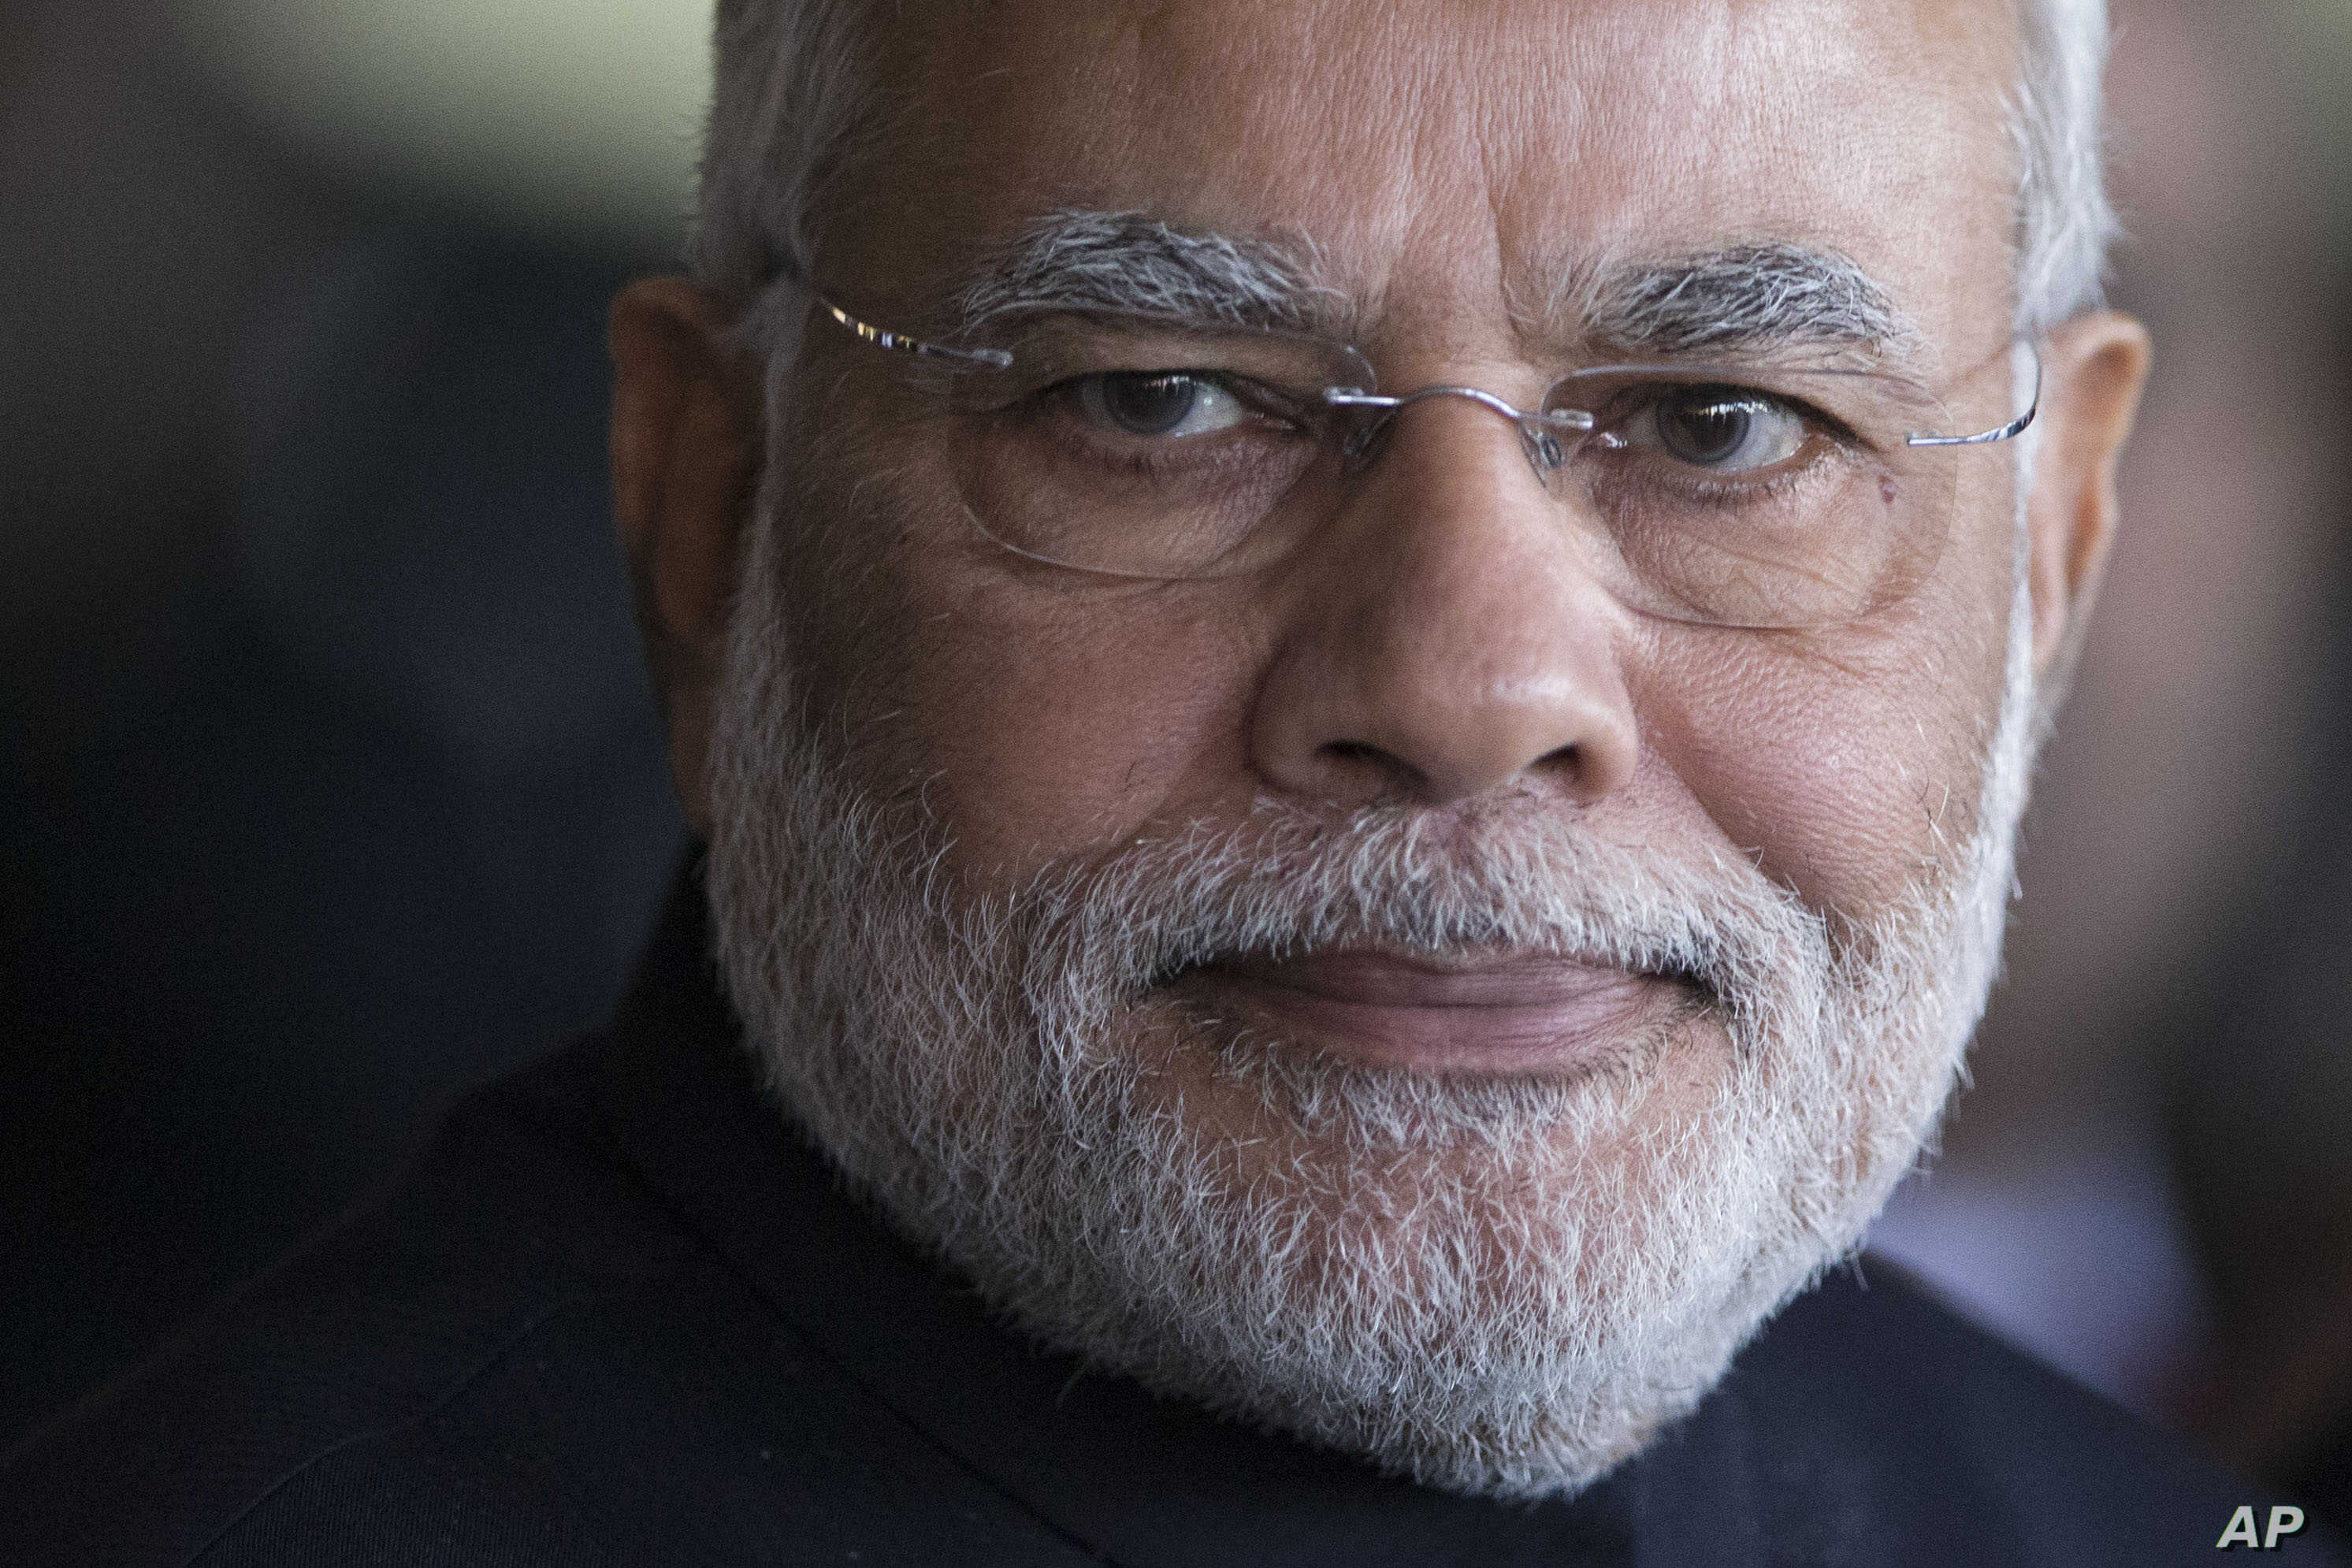 The U.S. sees potential for more partnership with the government of Indian Prime Minister Narendra Modi, shown in Brasilia, Brazail July 16, 2014.